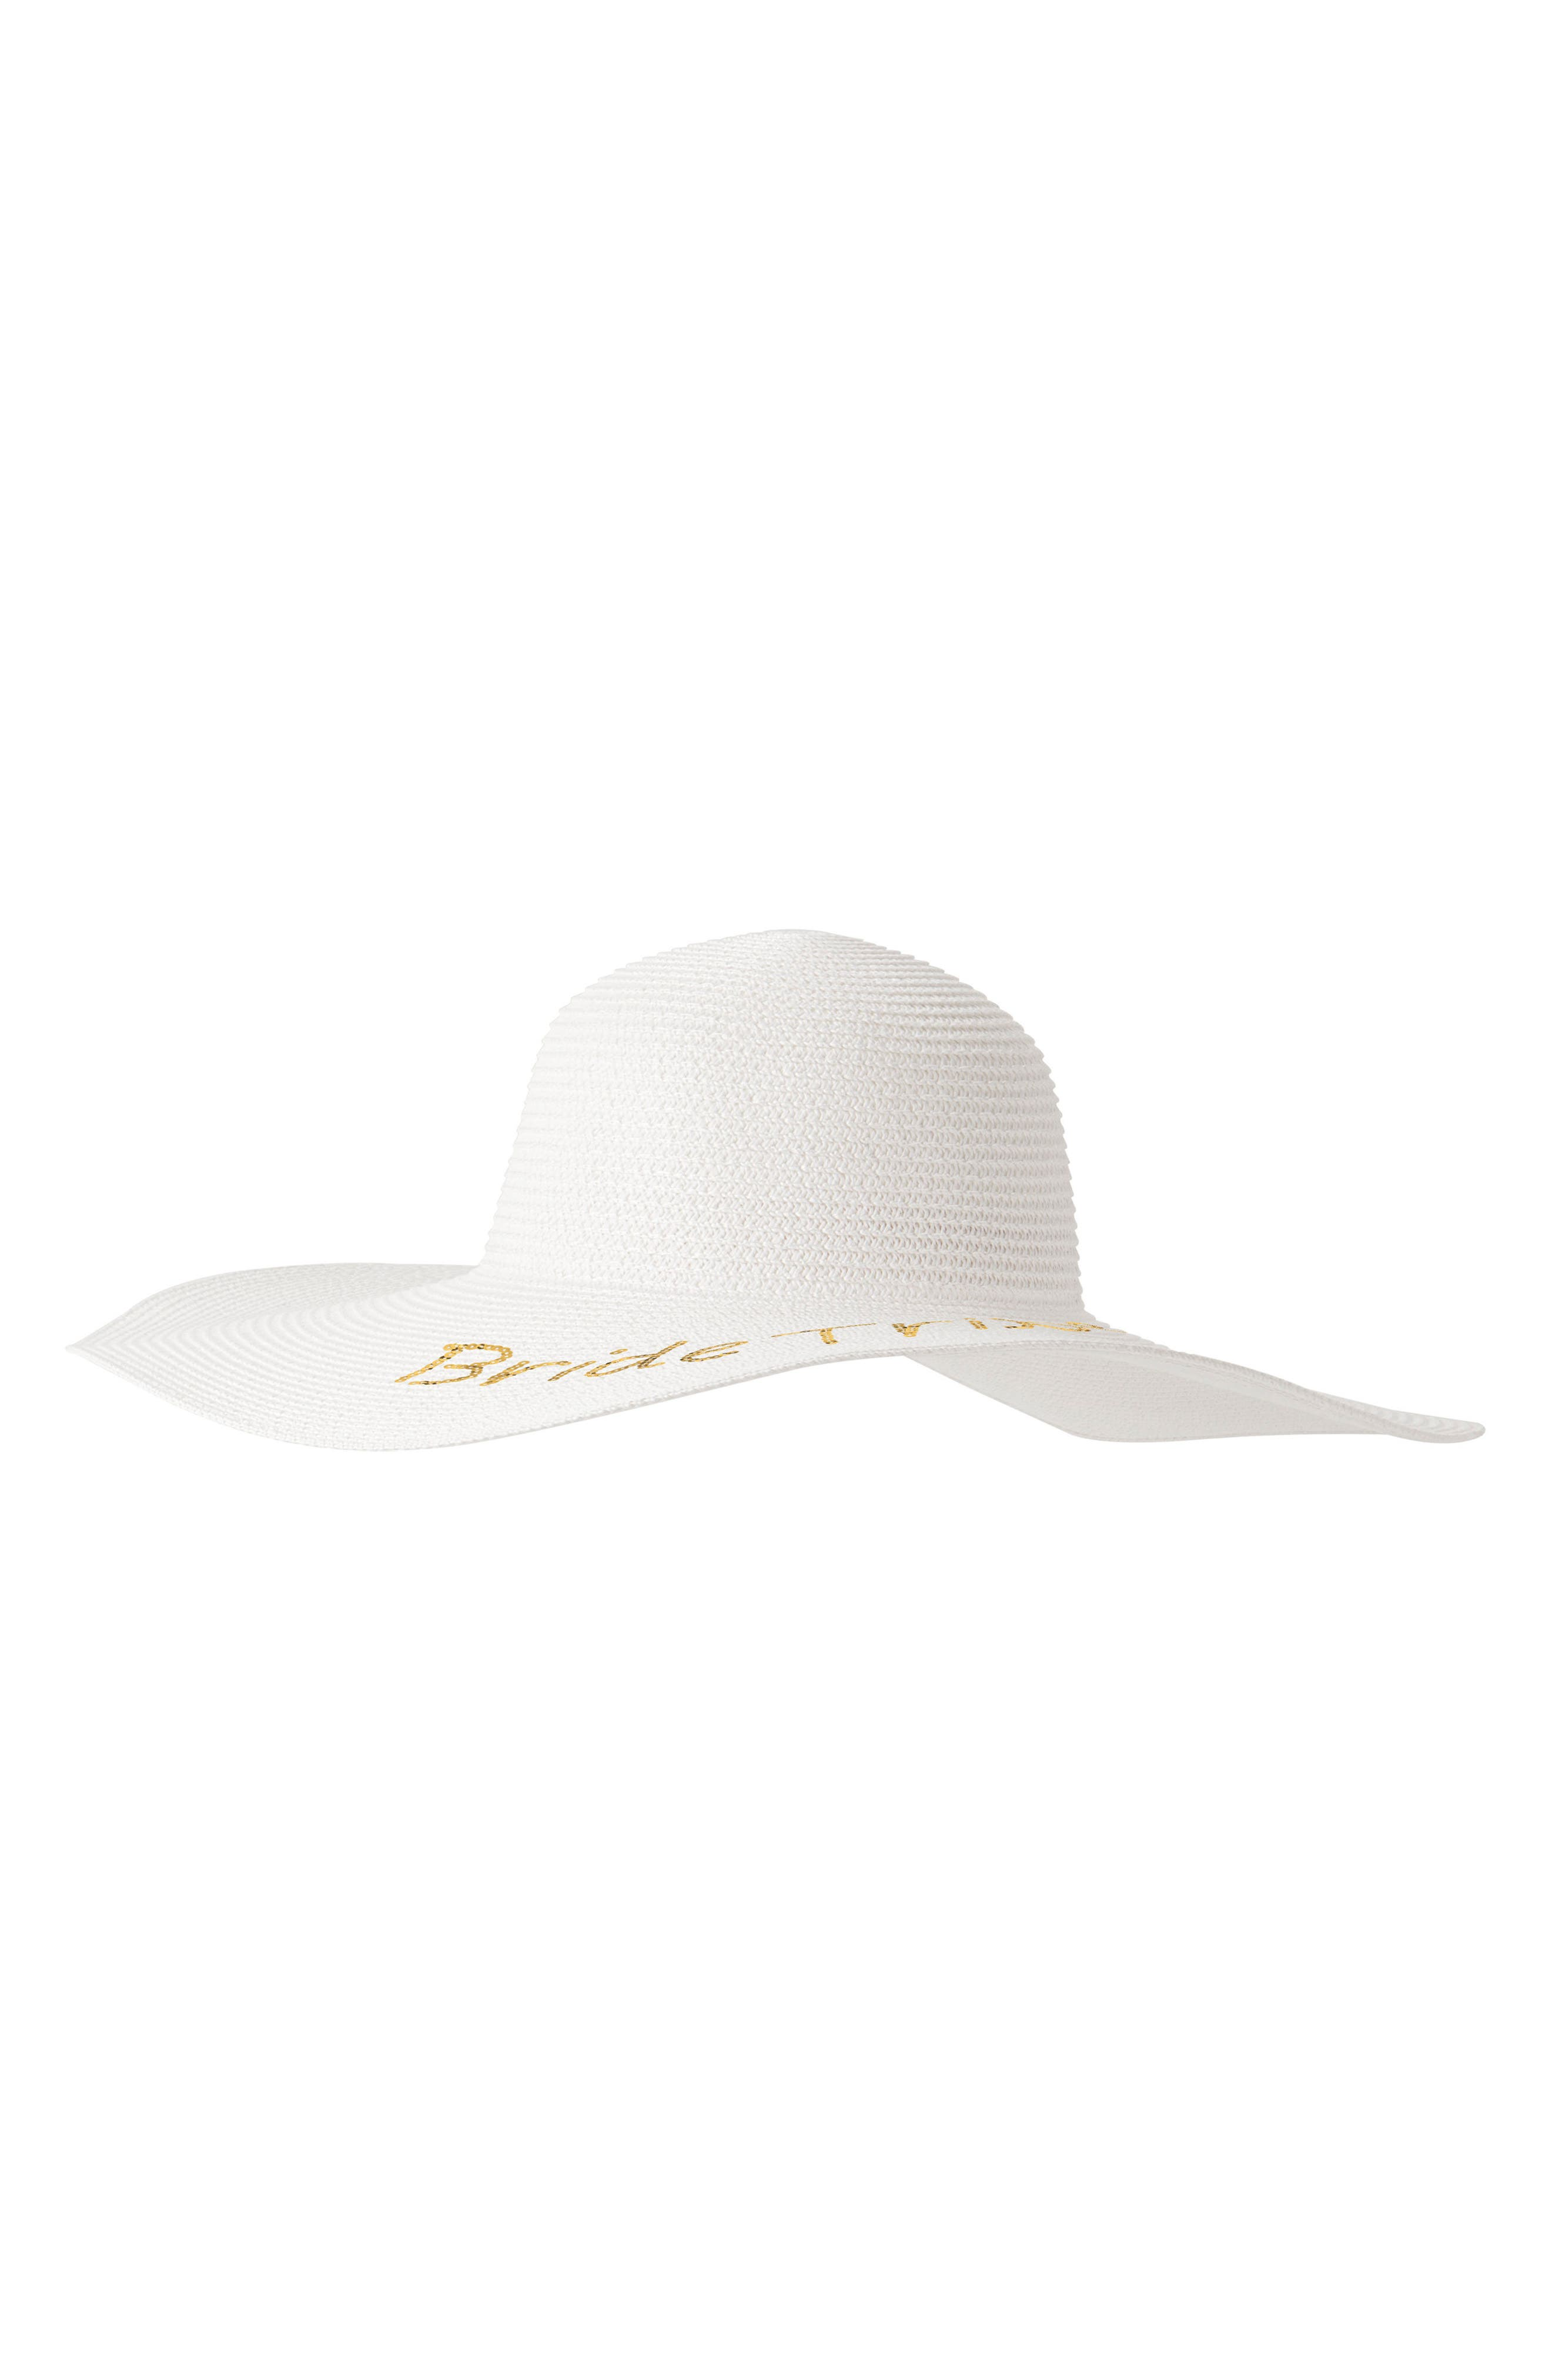 Sequin Bride Tribe Straw Hat,                         Main,                         color,